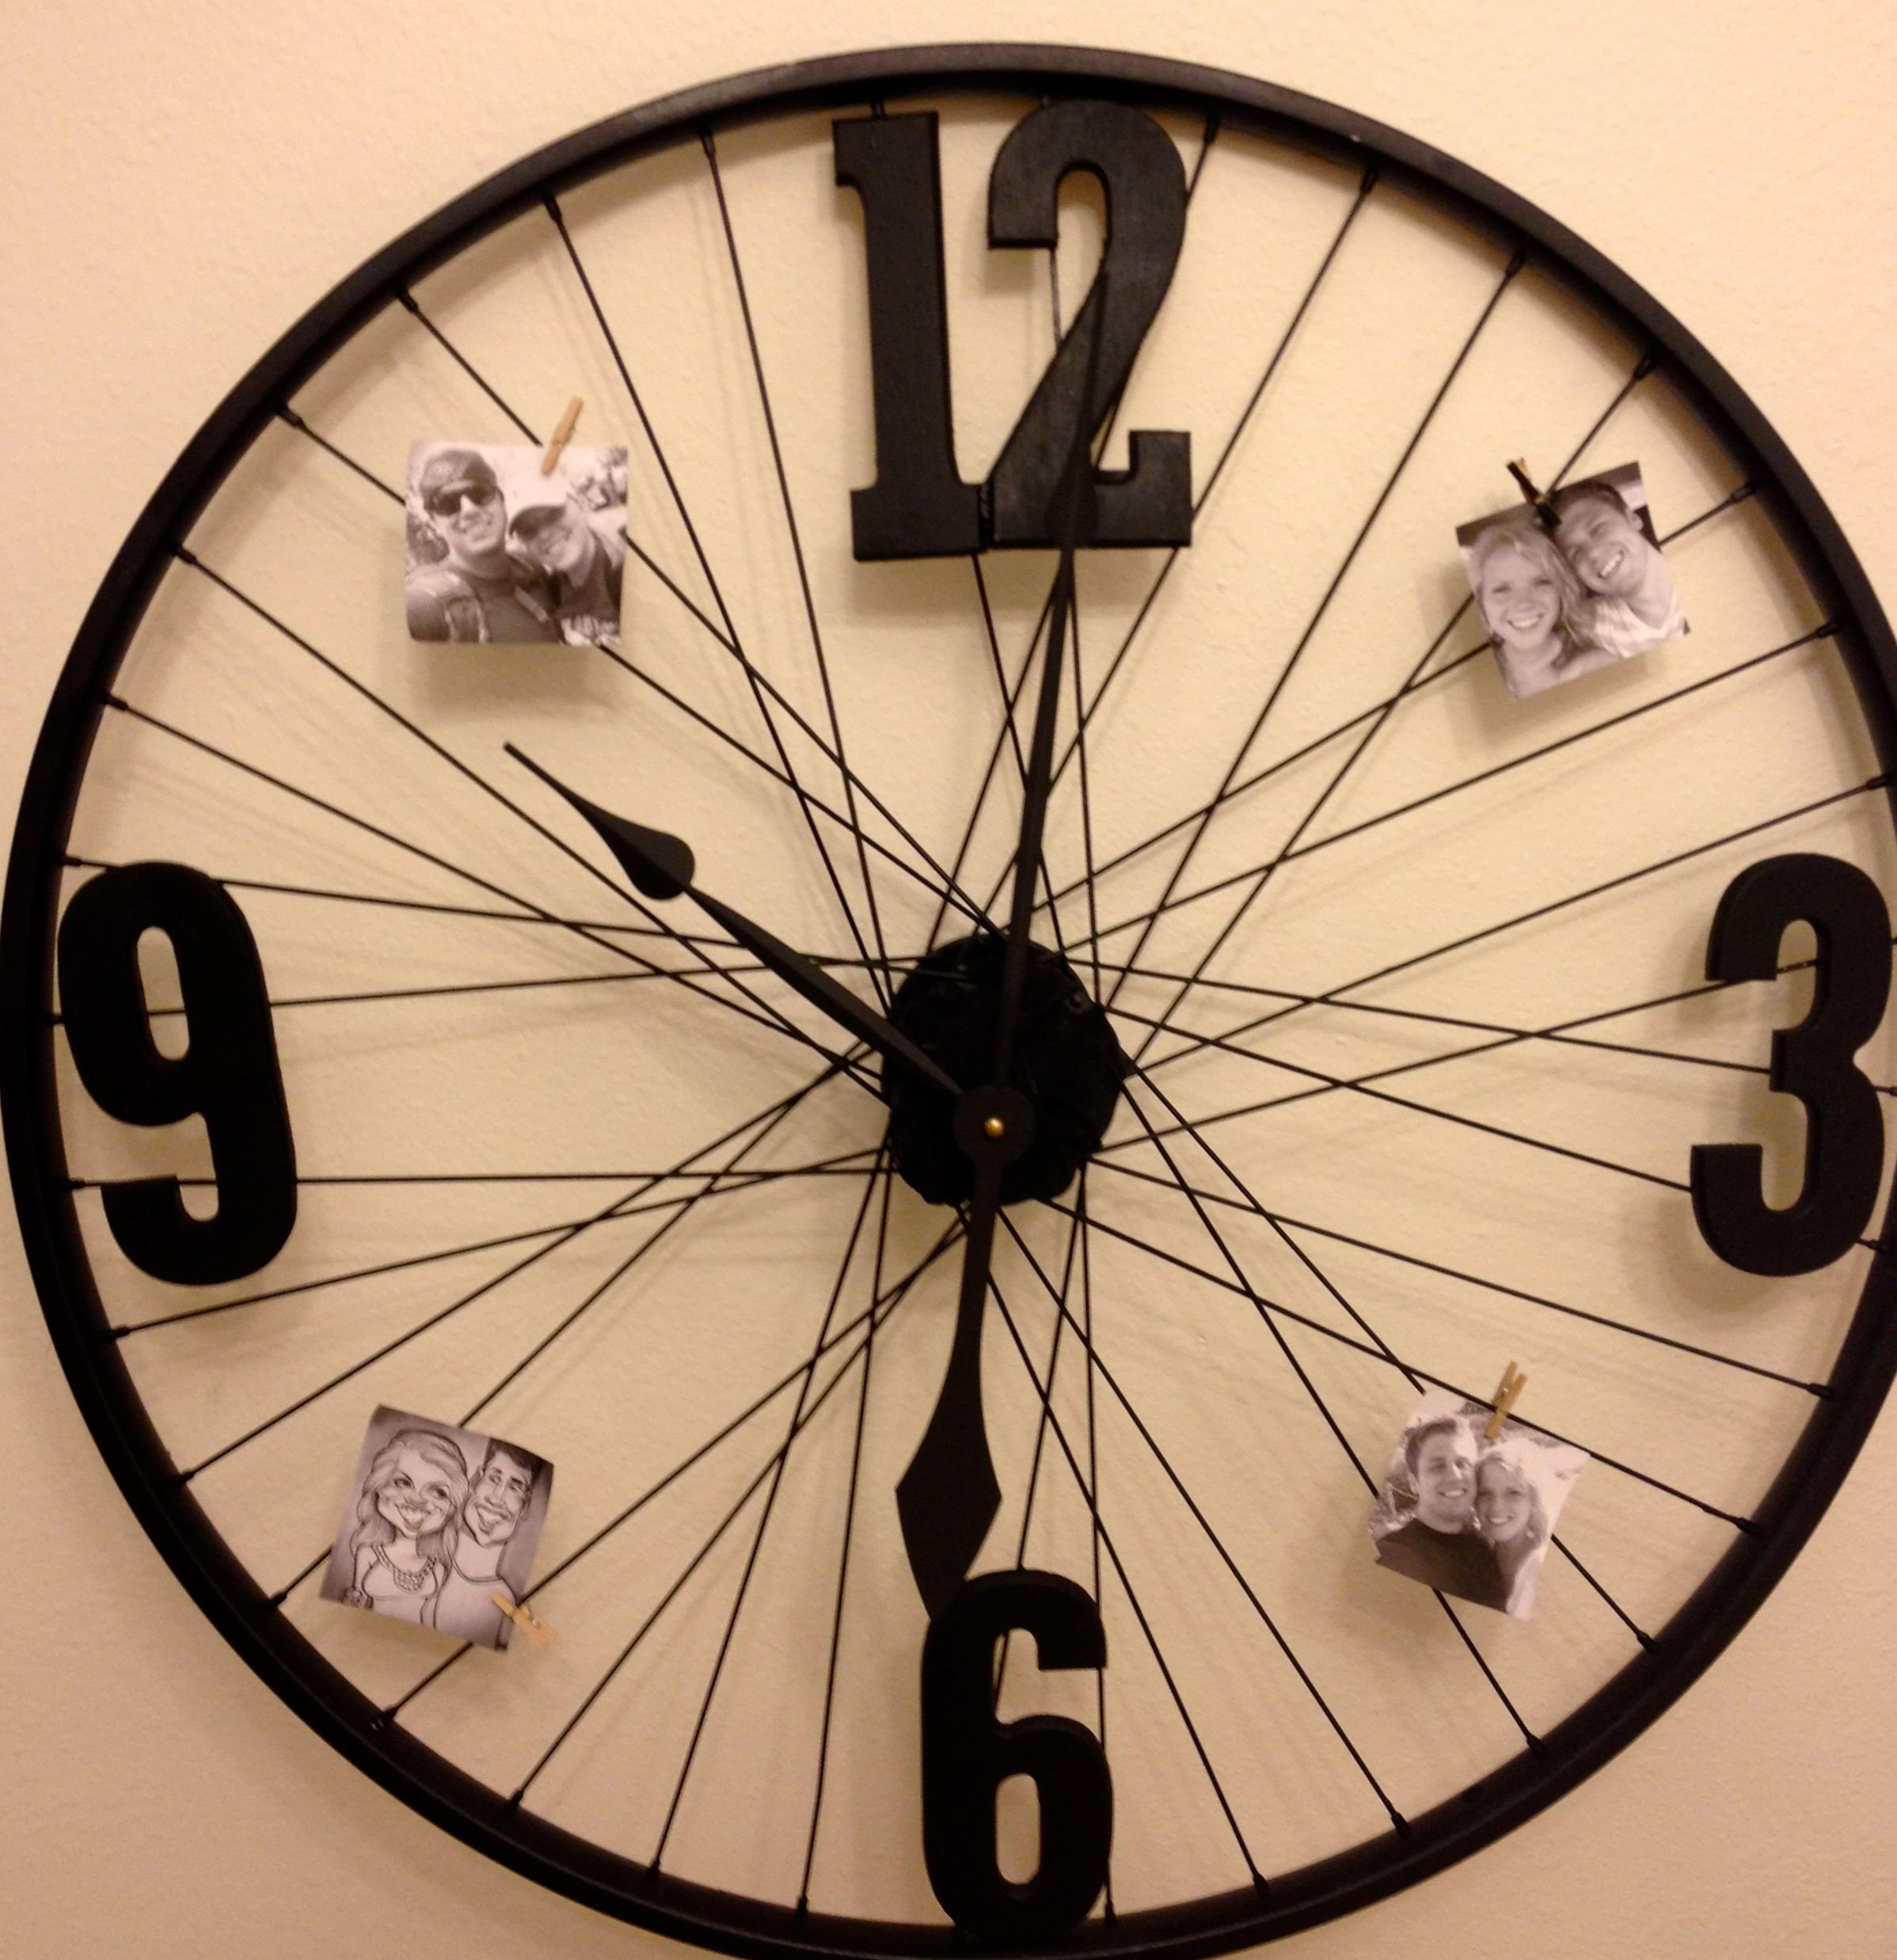 Diy bicycle wheel clock spray paint wheel and numbers from hobby diy bicycle wheel clock spray paint wheel and numbers from hobby lobby hot glue amipublicfo Gallery